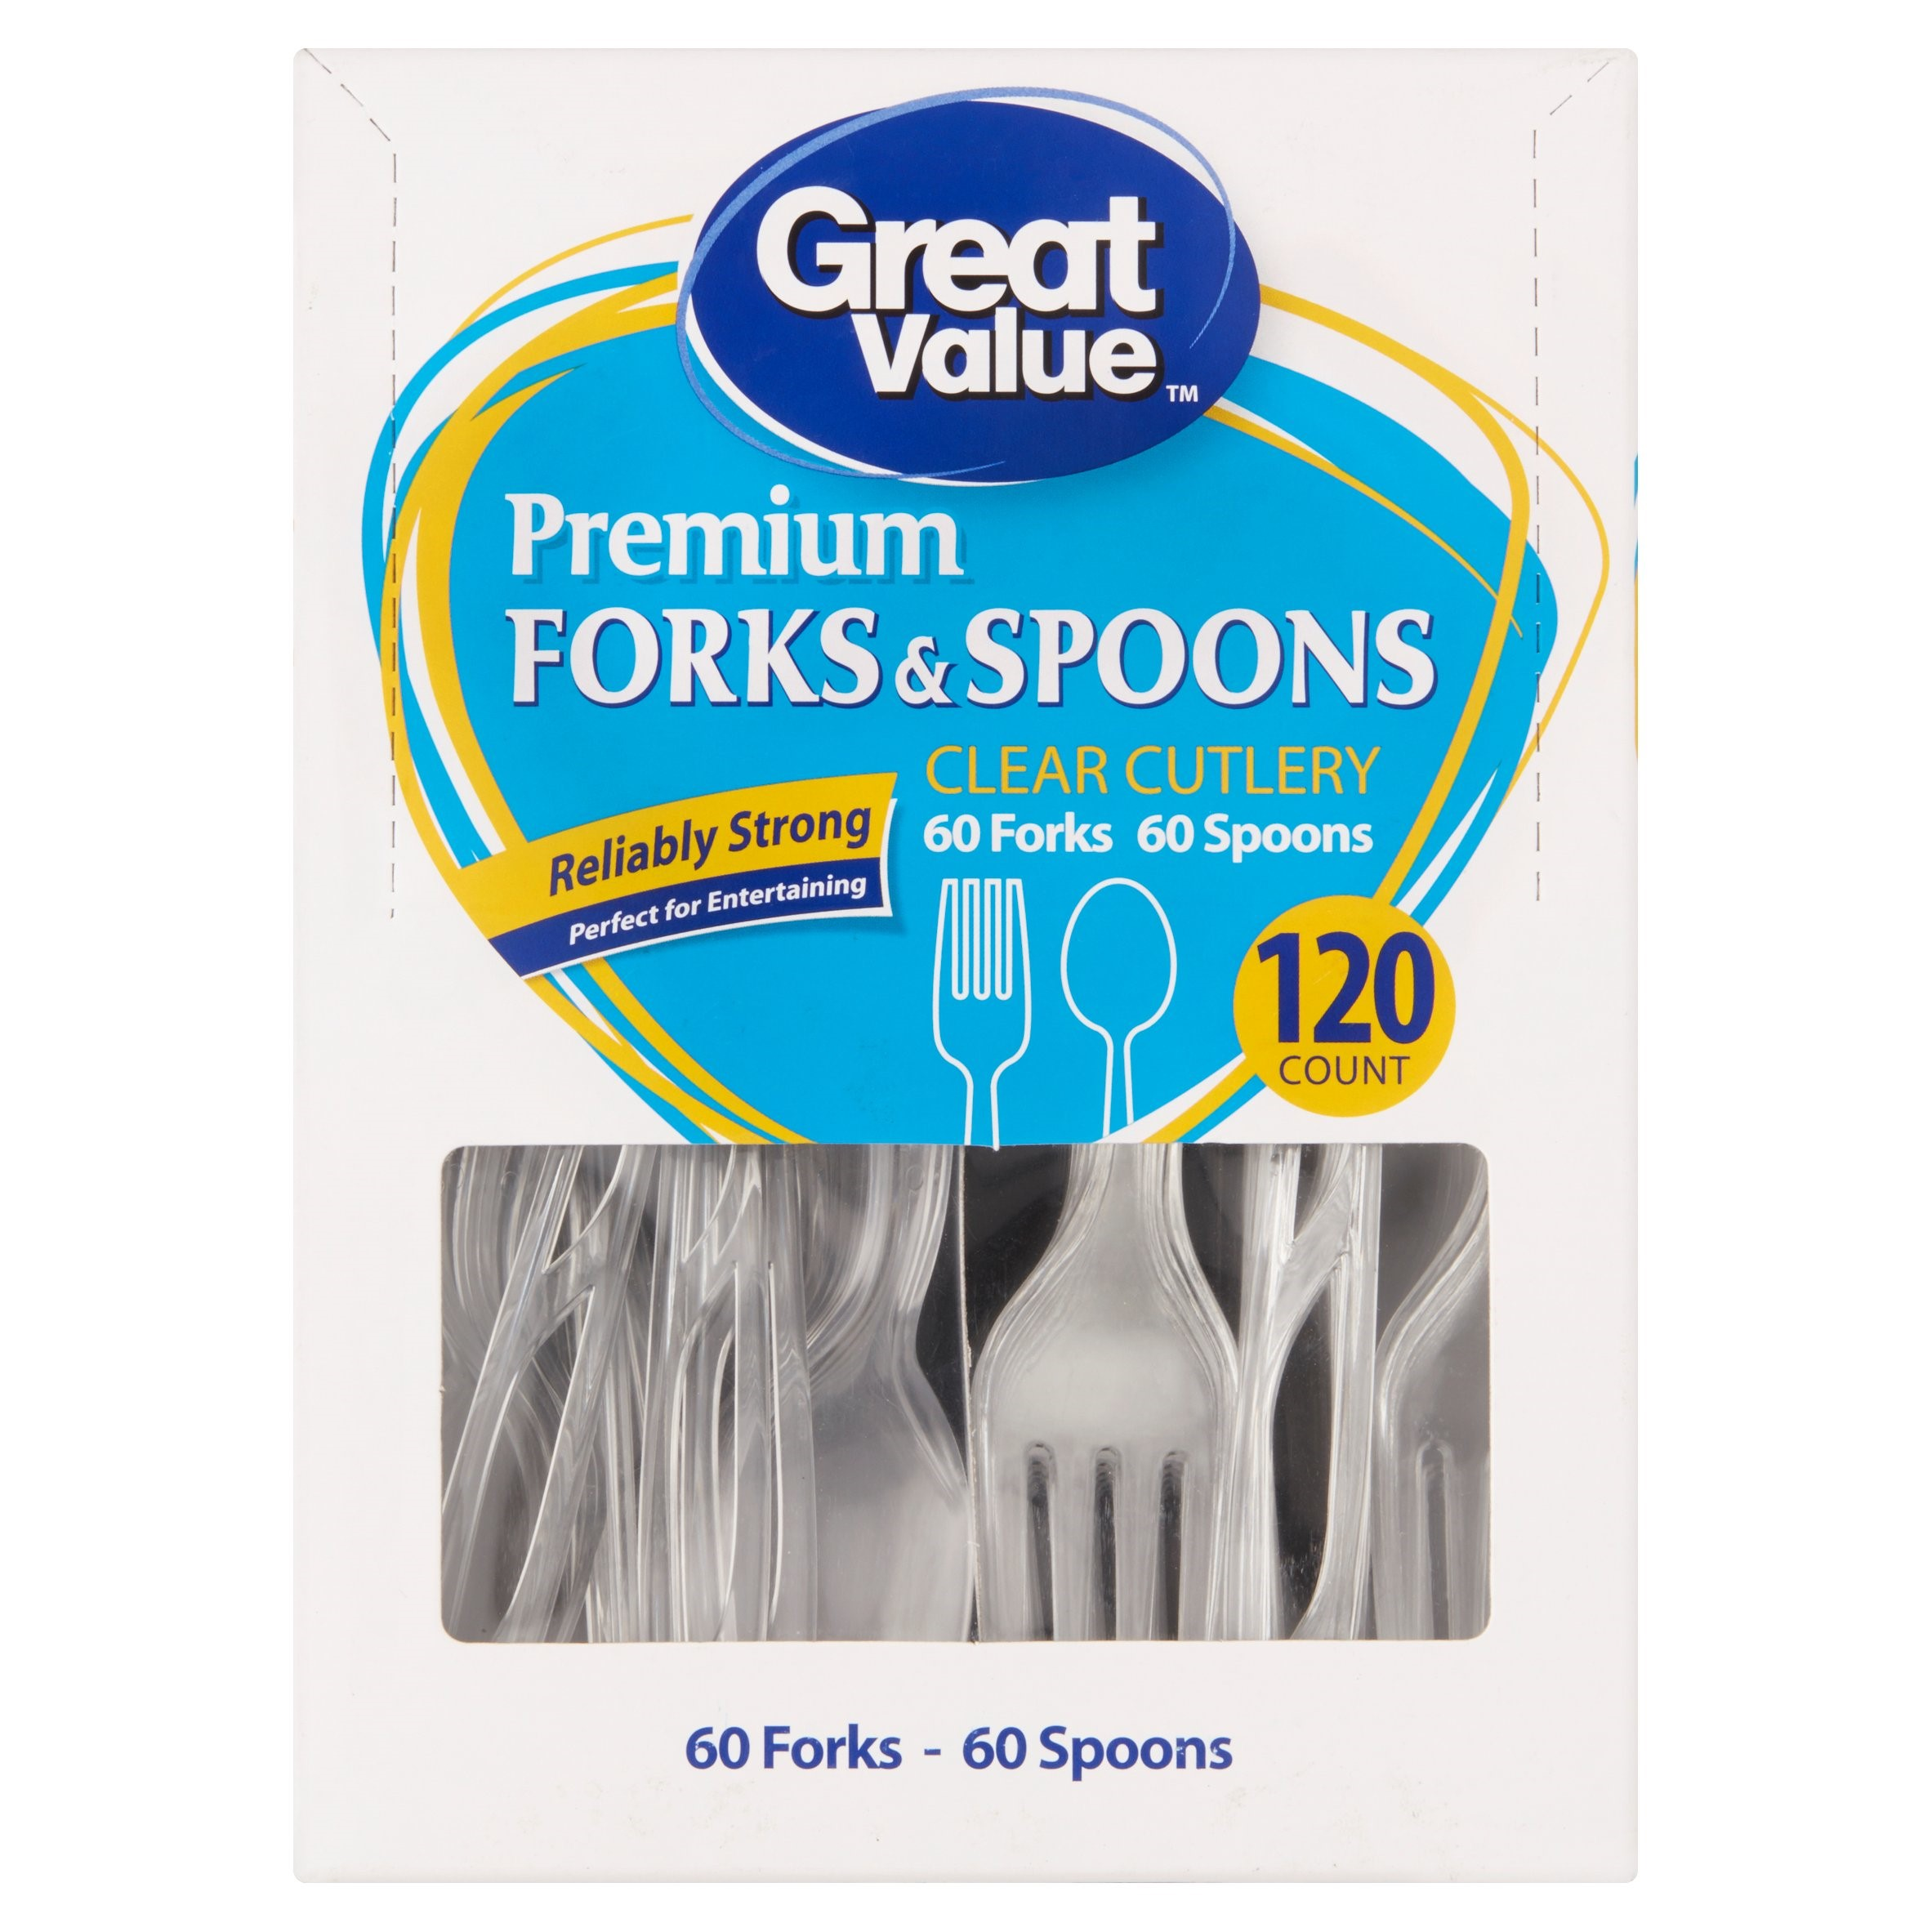 Great Value Premium Forks & Spoons, Clear, 120 Count - Walmart.com